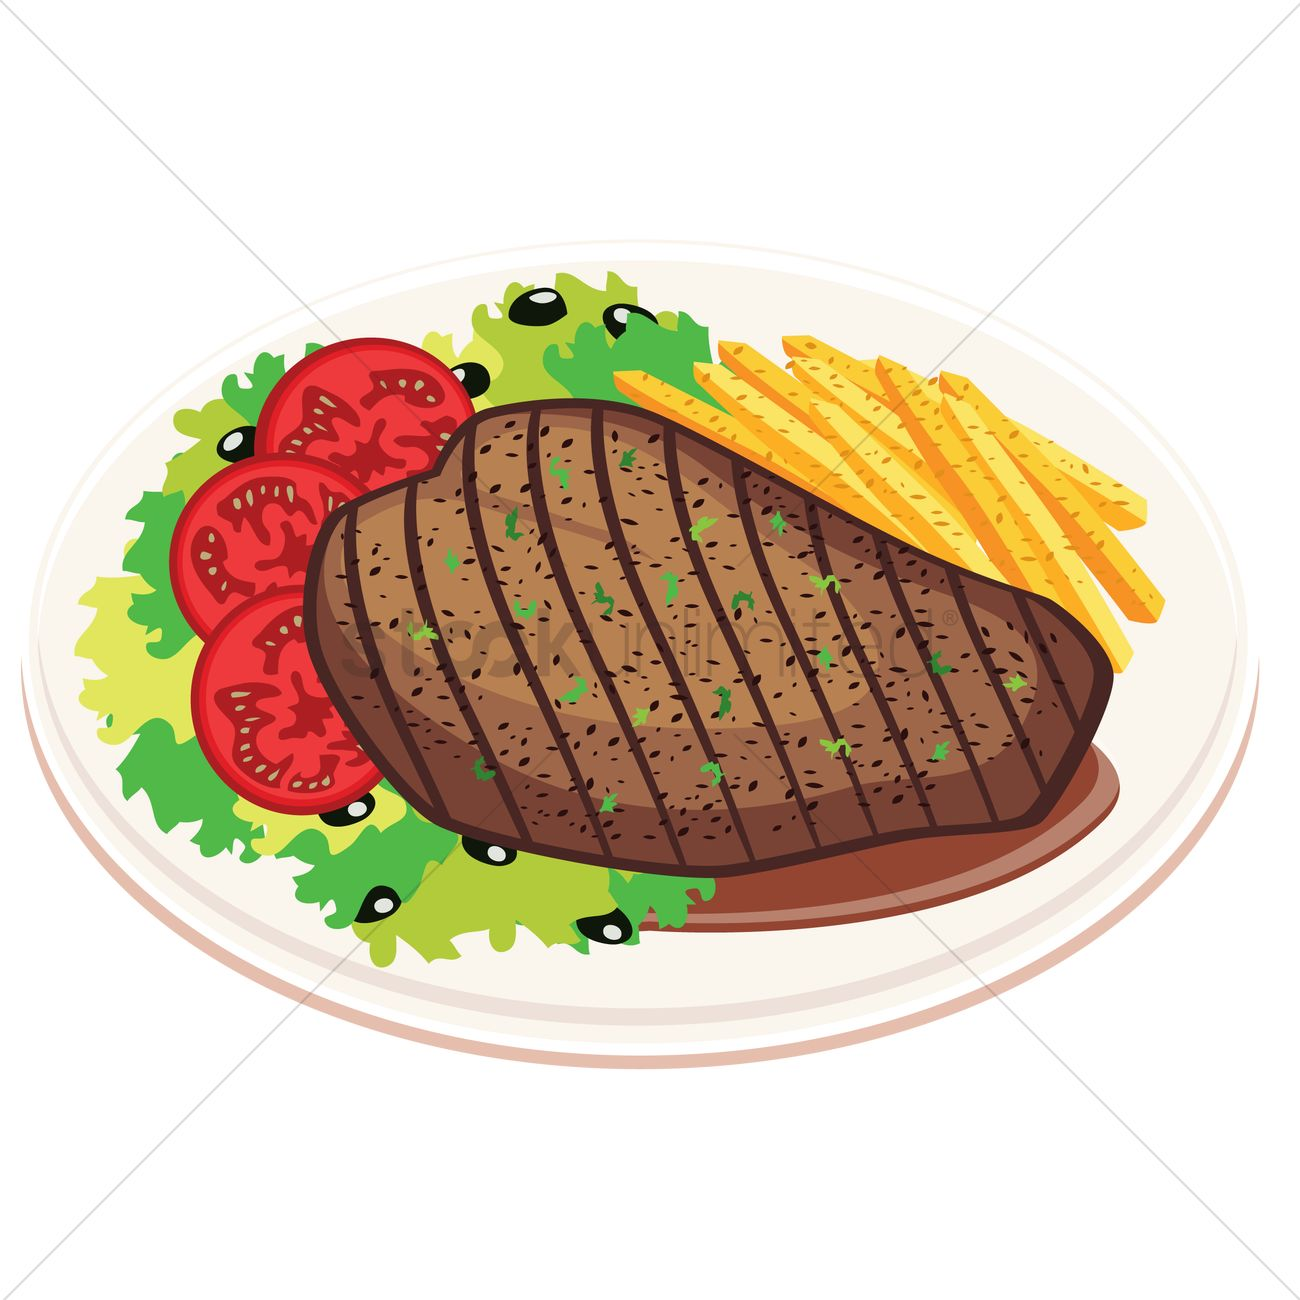 Grilled steak with fries and salad Vector Image - 1236546 ...